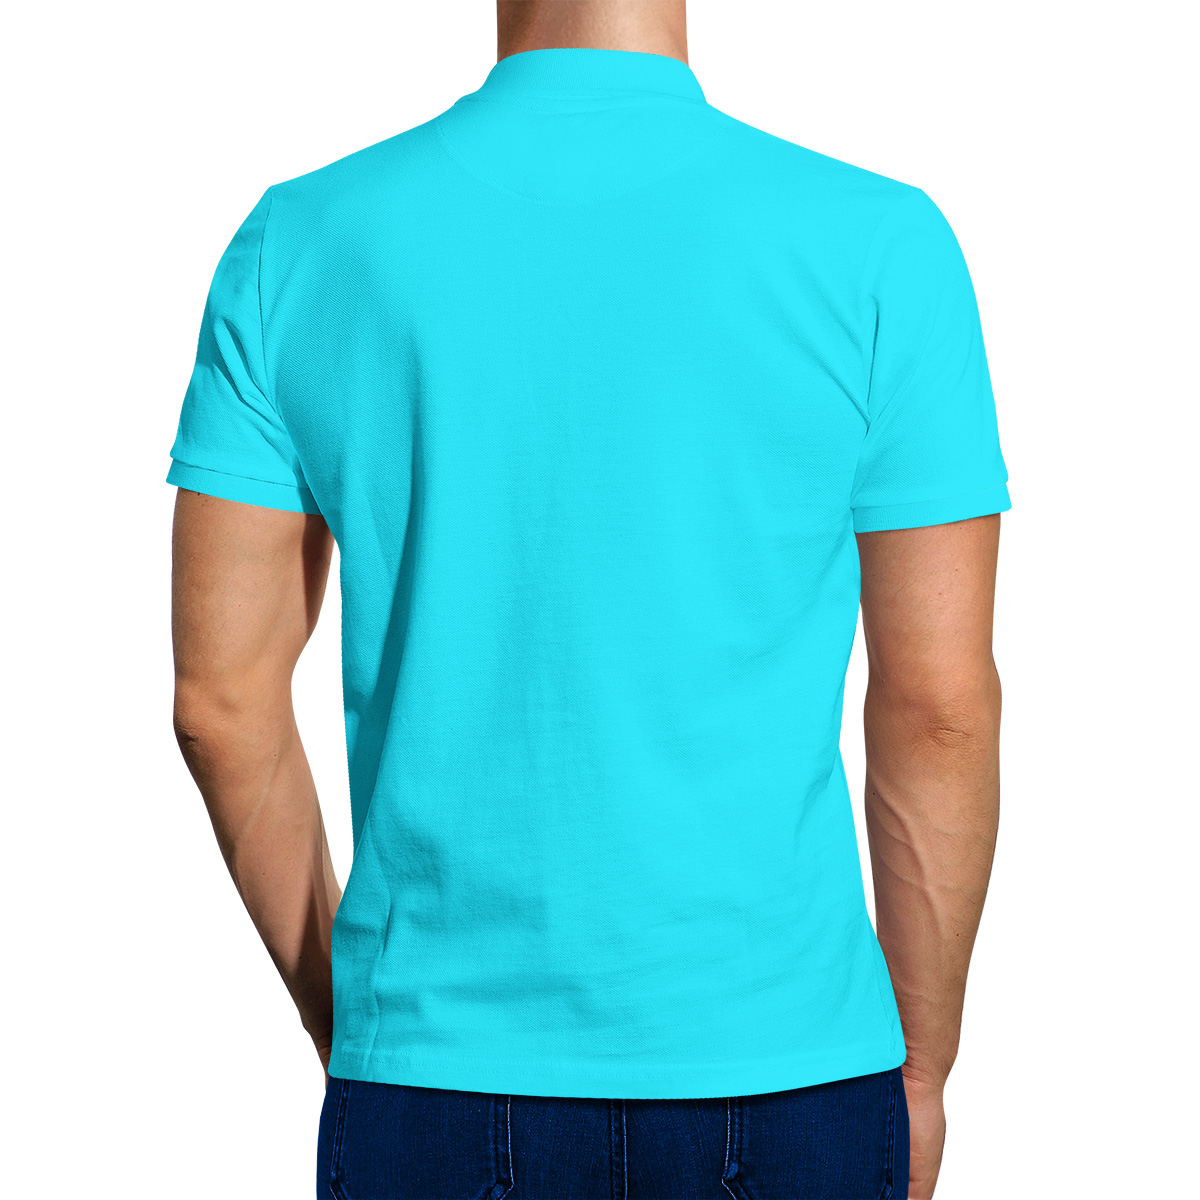 Sky Blue T Shirt Front And Back: light blue t shirt mens